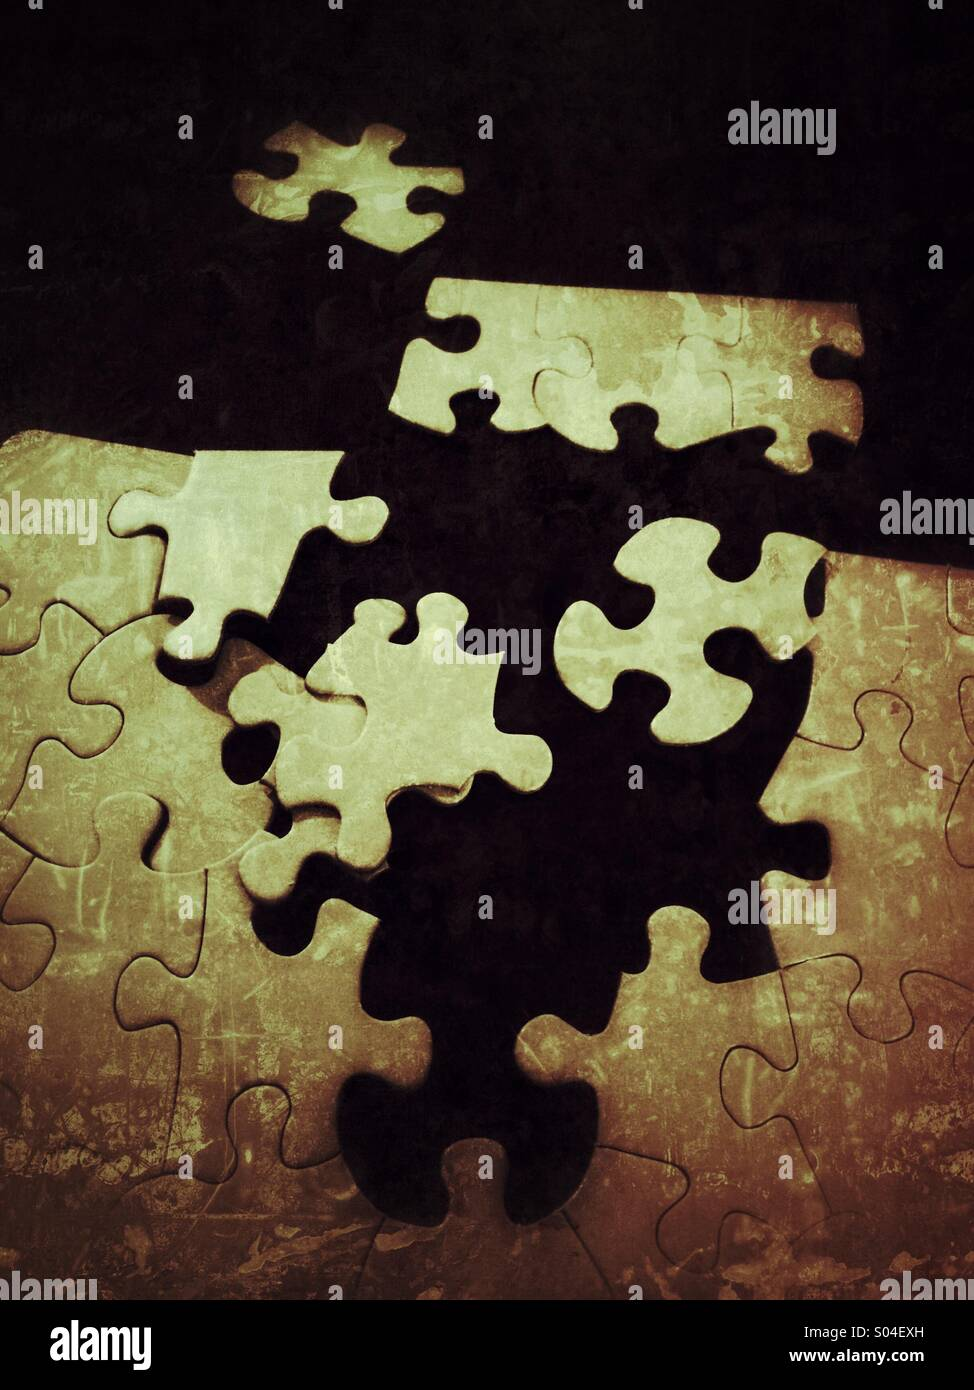 Unfinished puzzle - Stock Image